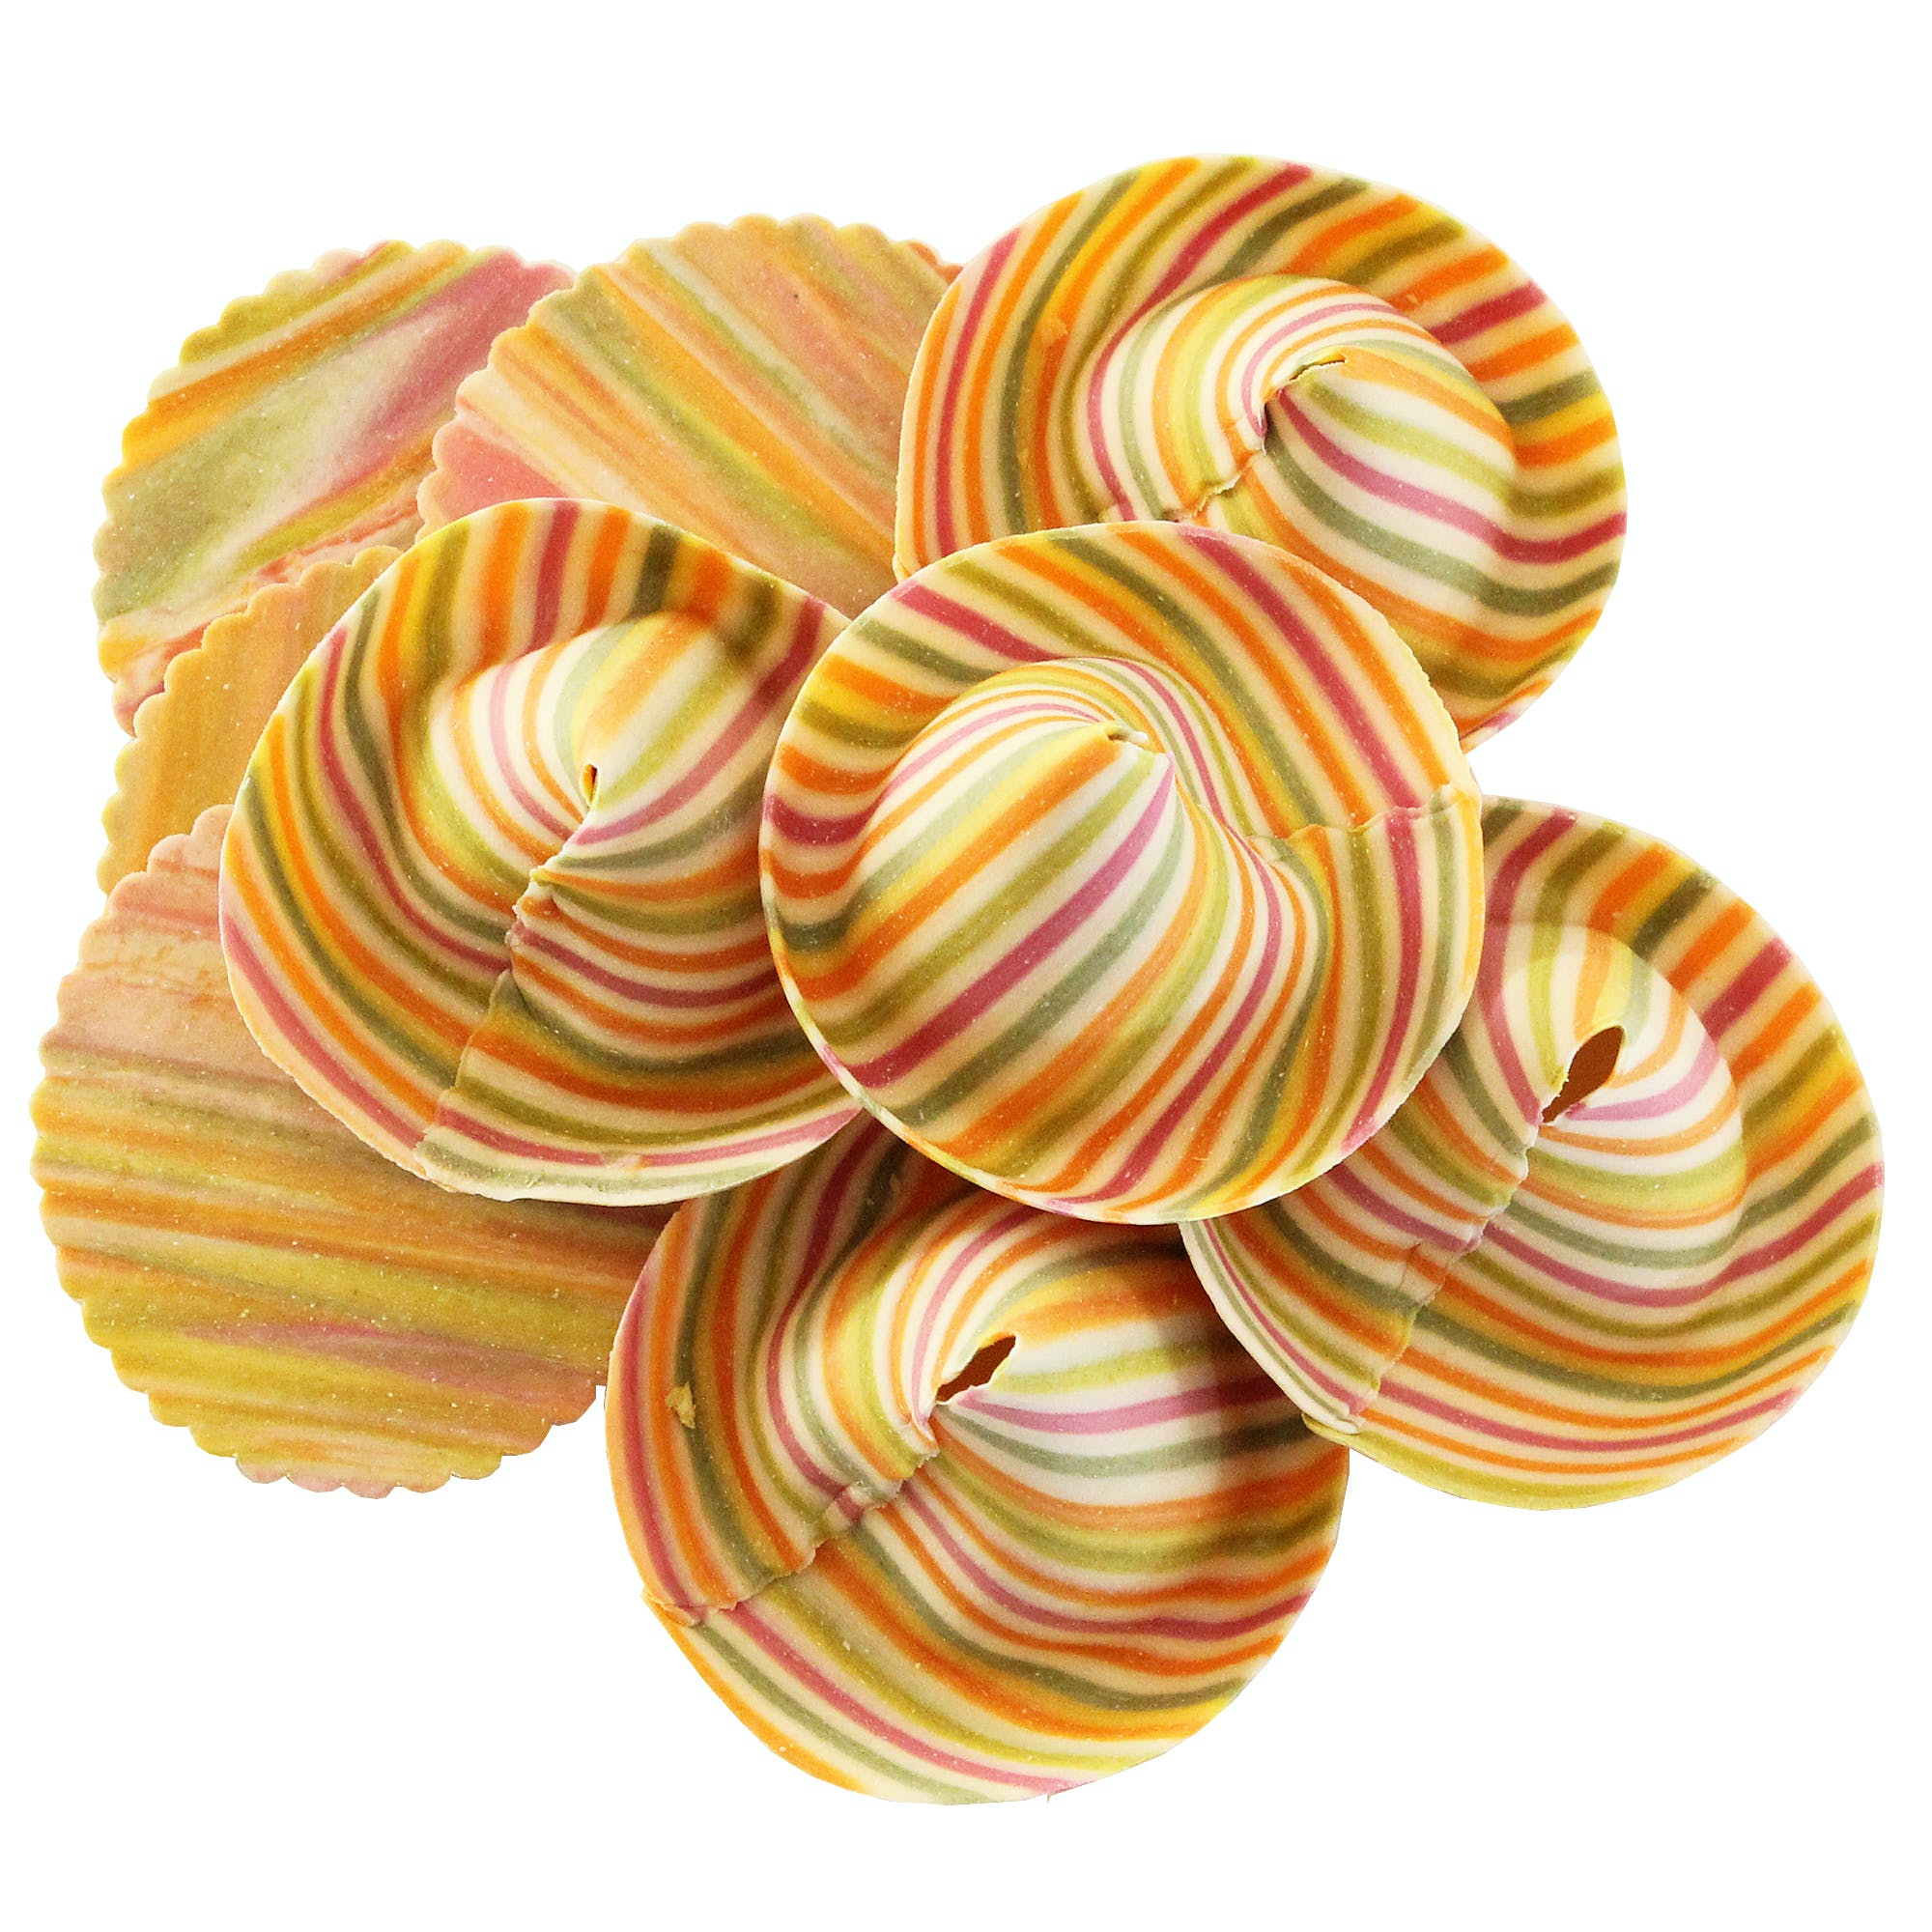 "Mexican Hats ""Sombreroni"" Colored Pasta Pasta sold by M5 Corporation"